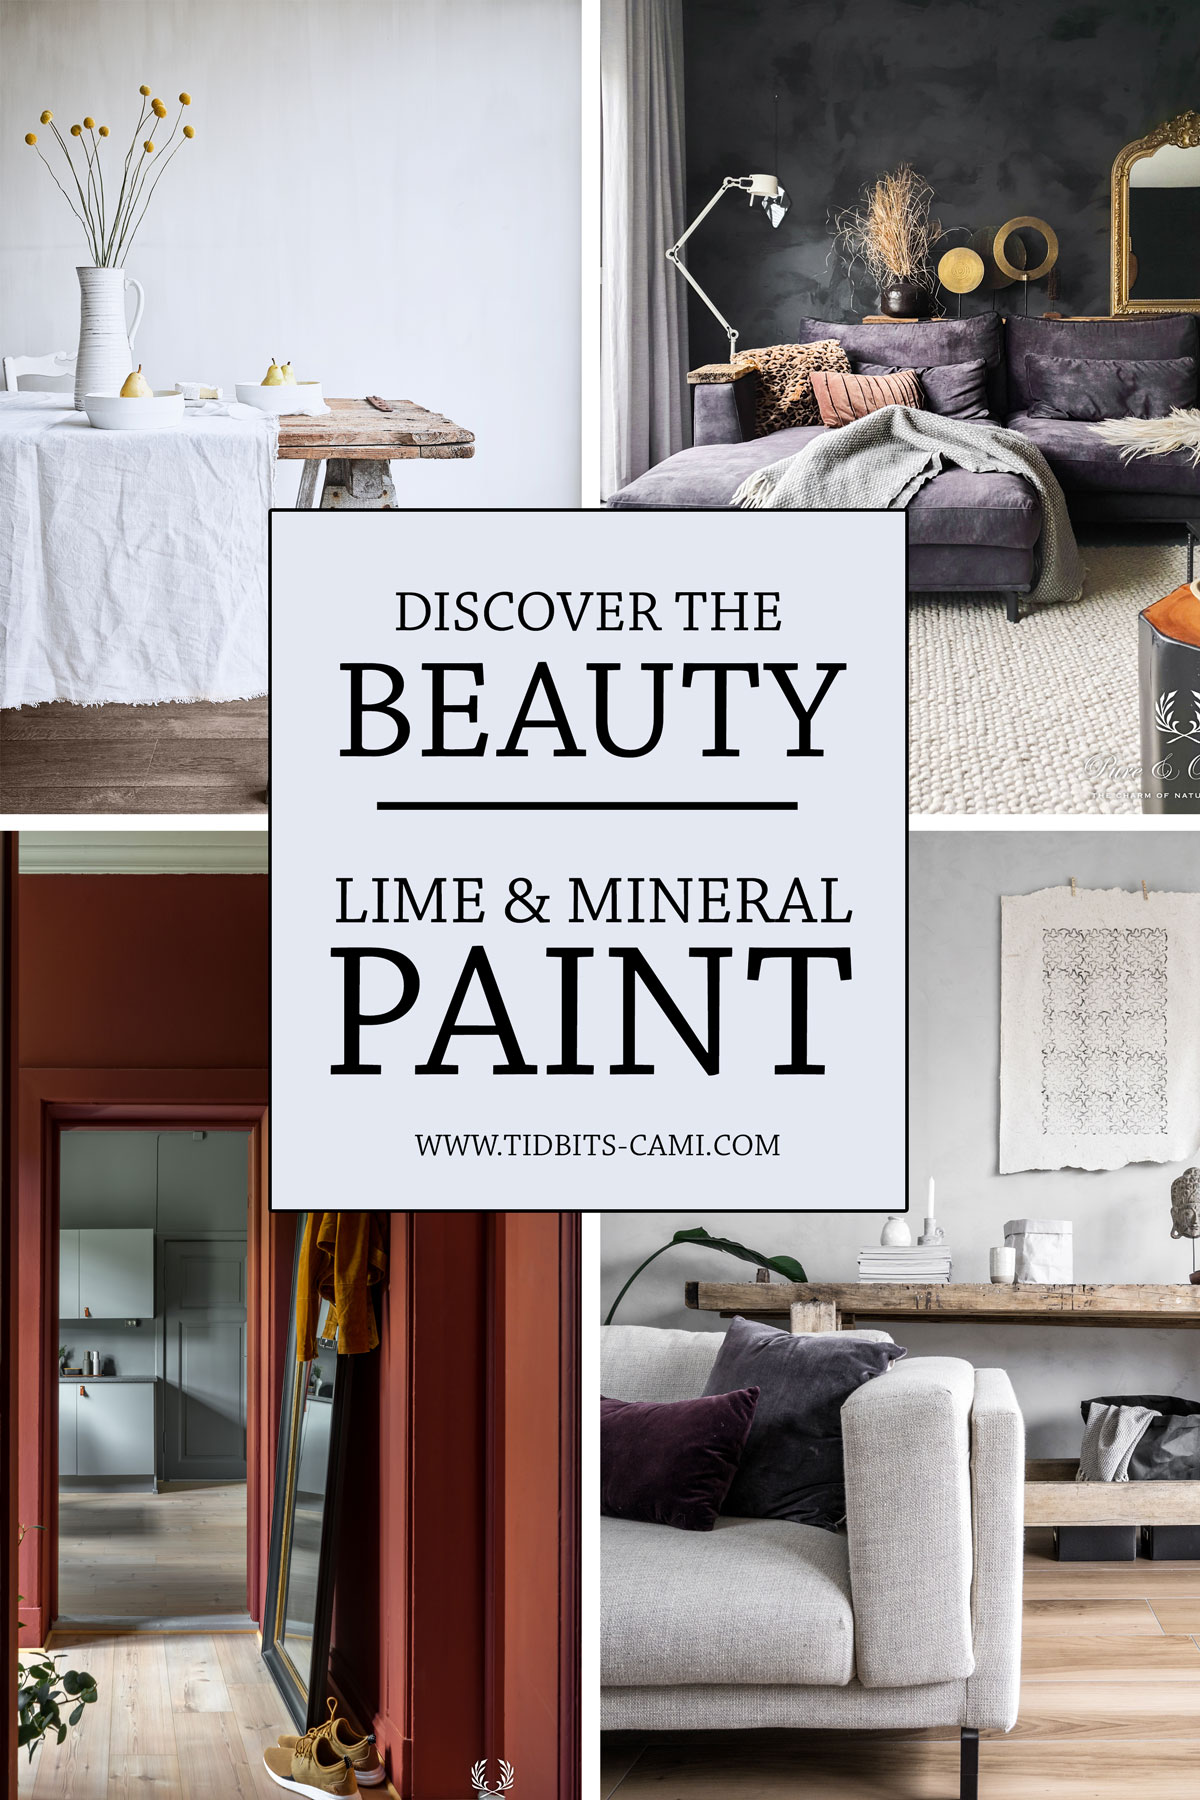 ALL ABOUT LIME AND MINERAL PAINTS FOR YOUR HOME